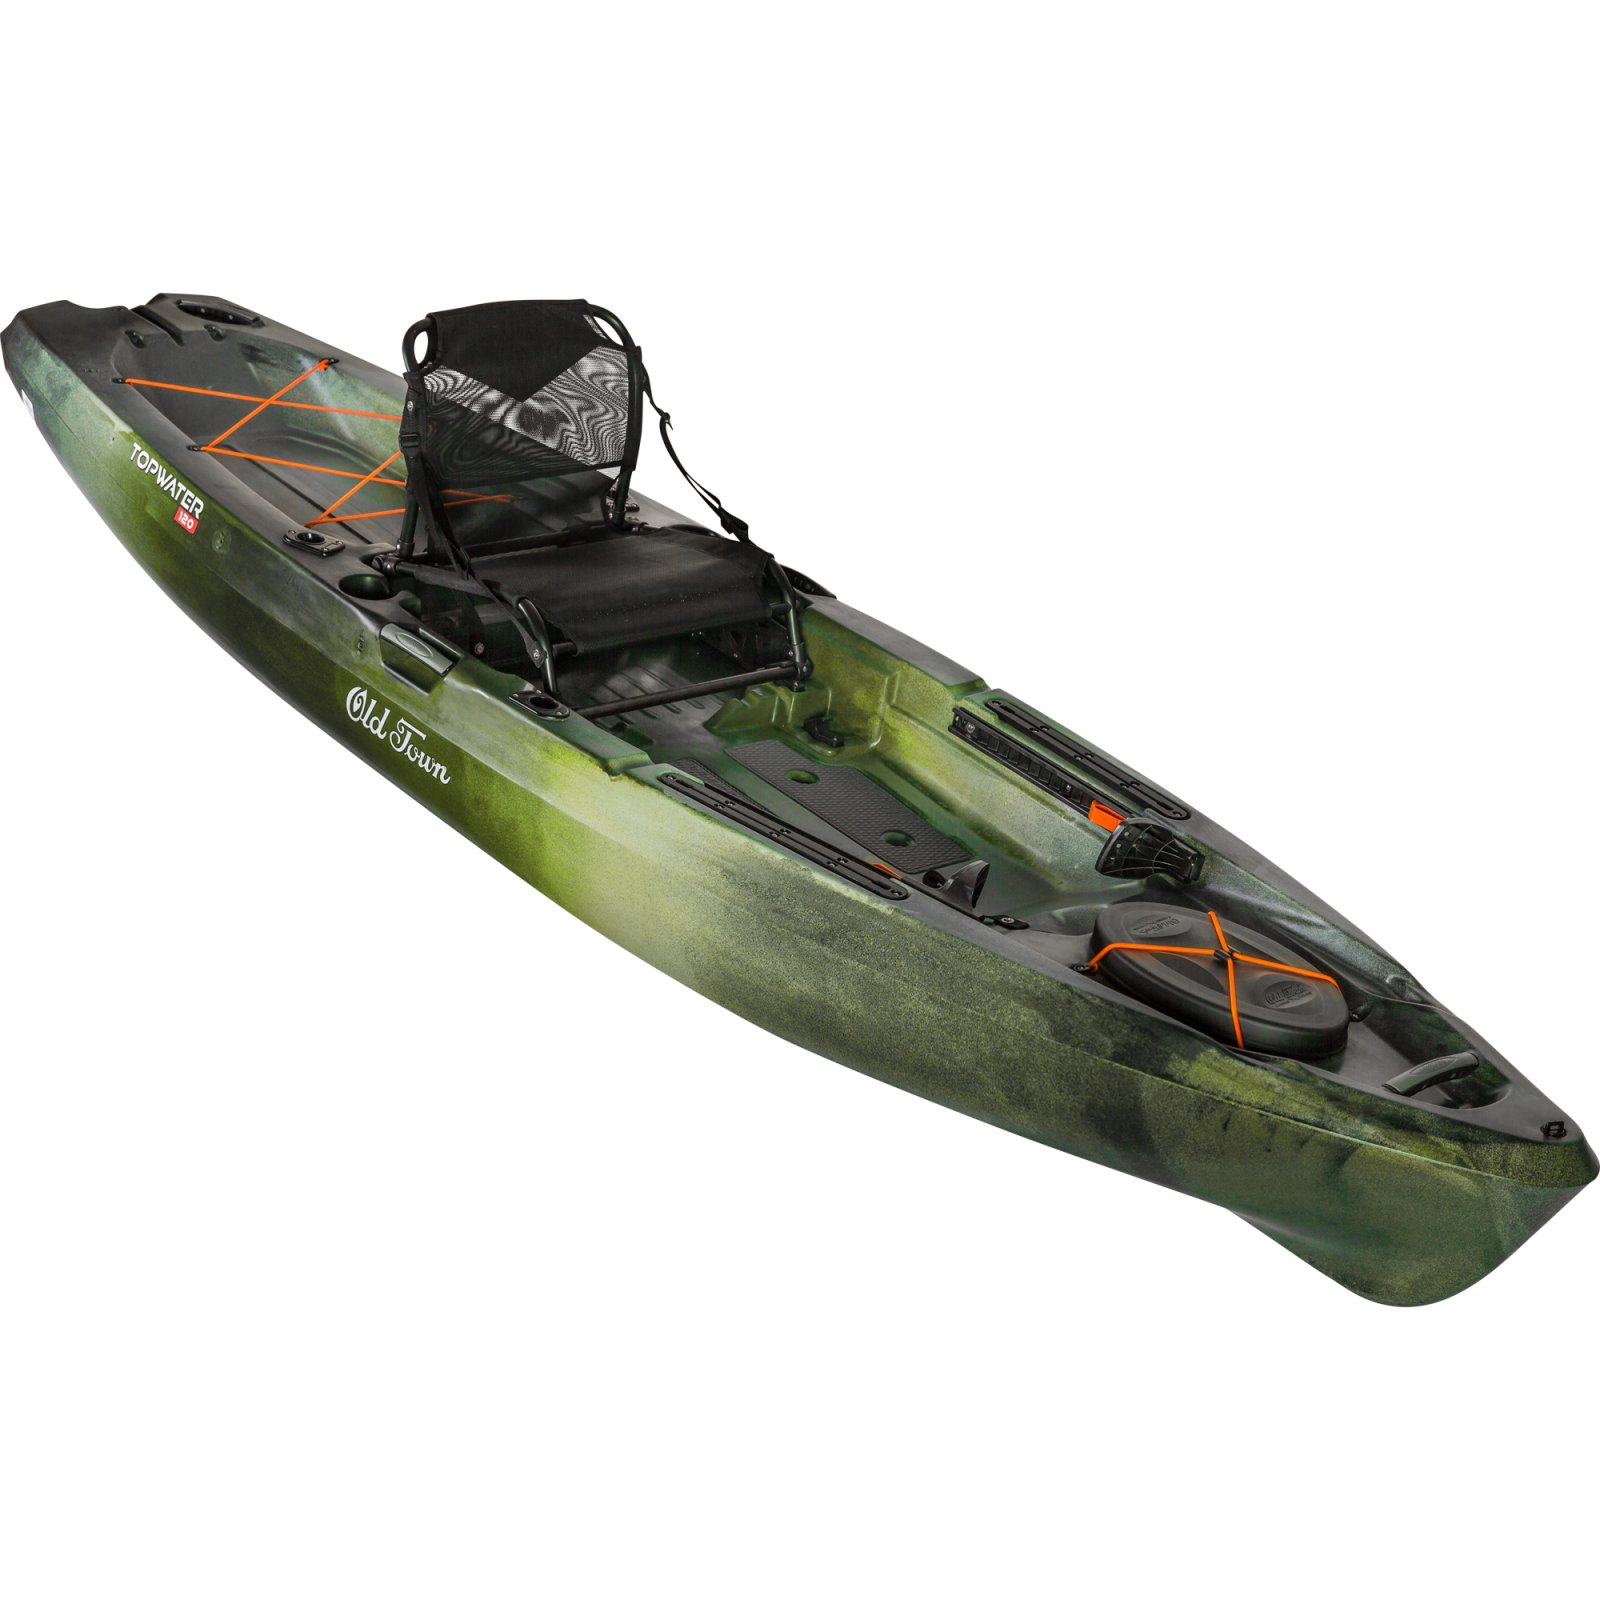 Old Town Topwater 120 - ORDER NEW